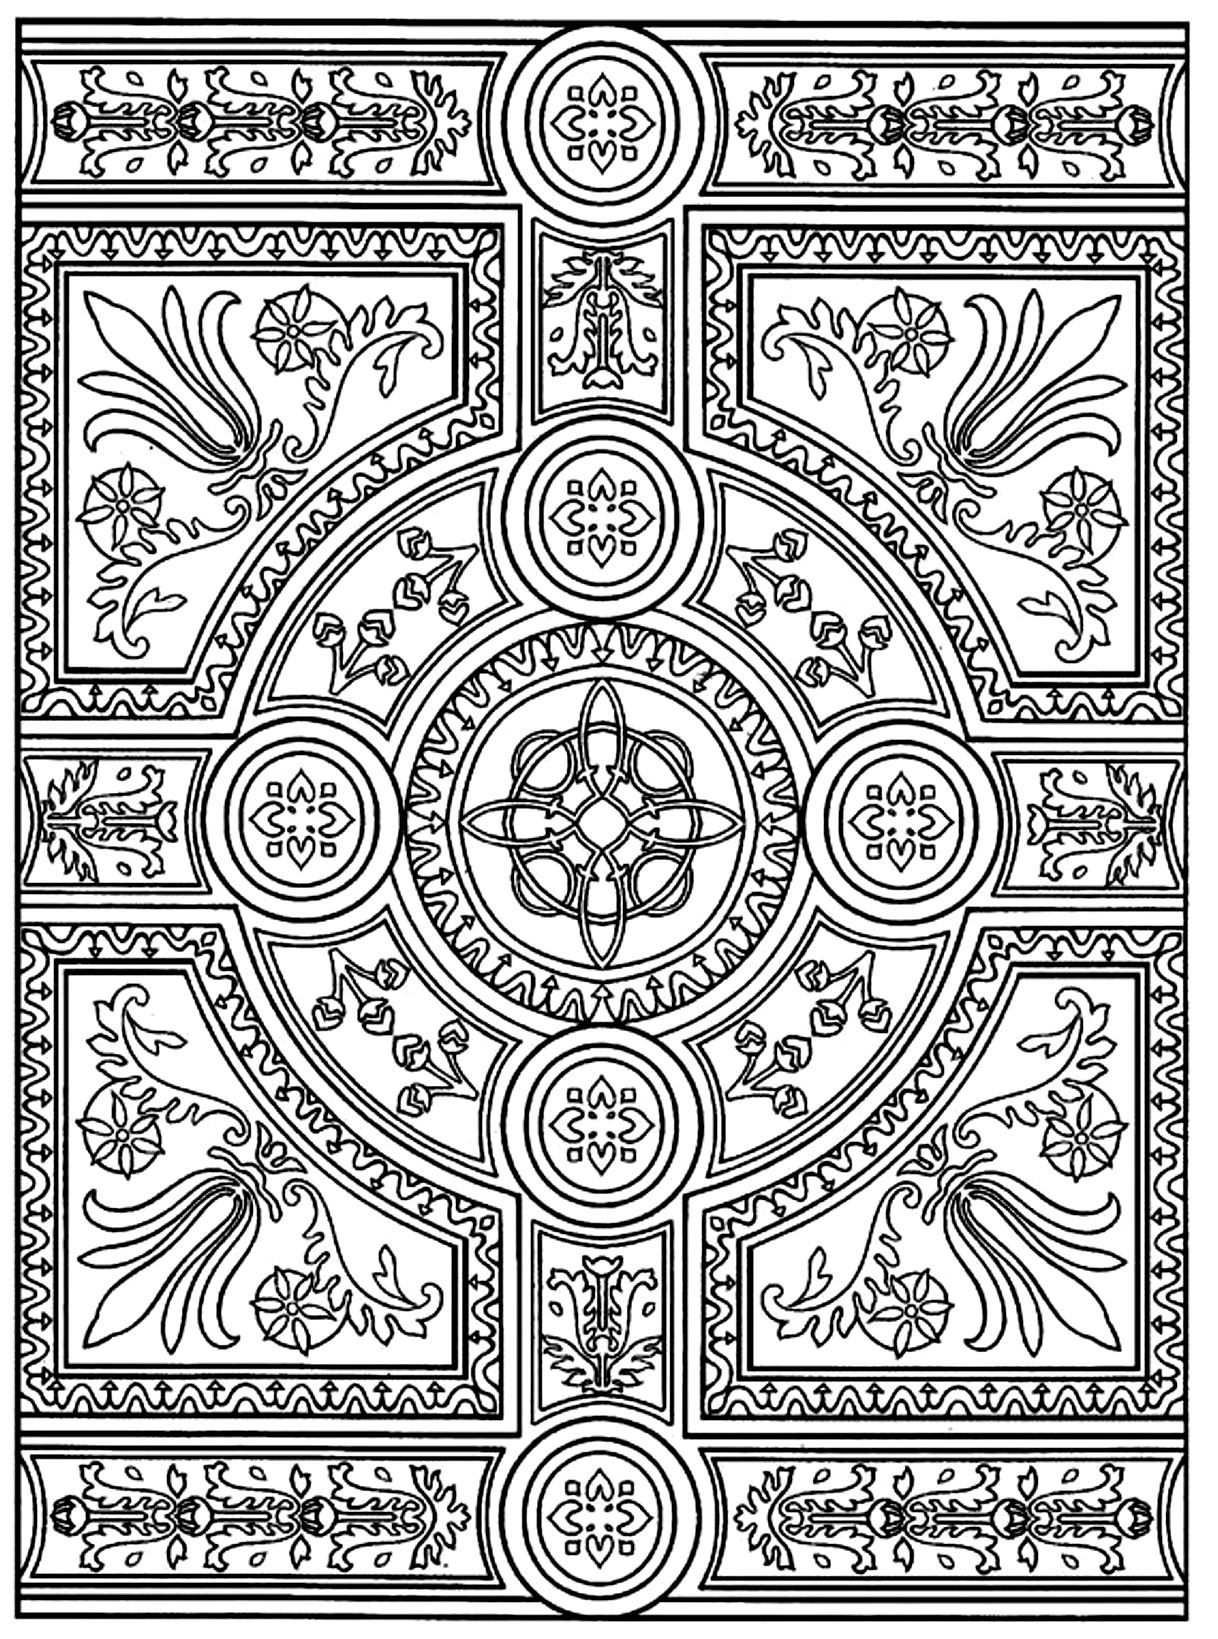 Stress free coloring book - Free Coloring Page Coloring Adult Zen Anti Stress To Print